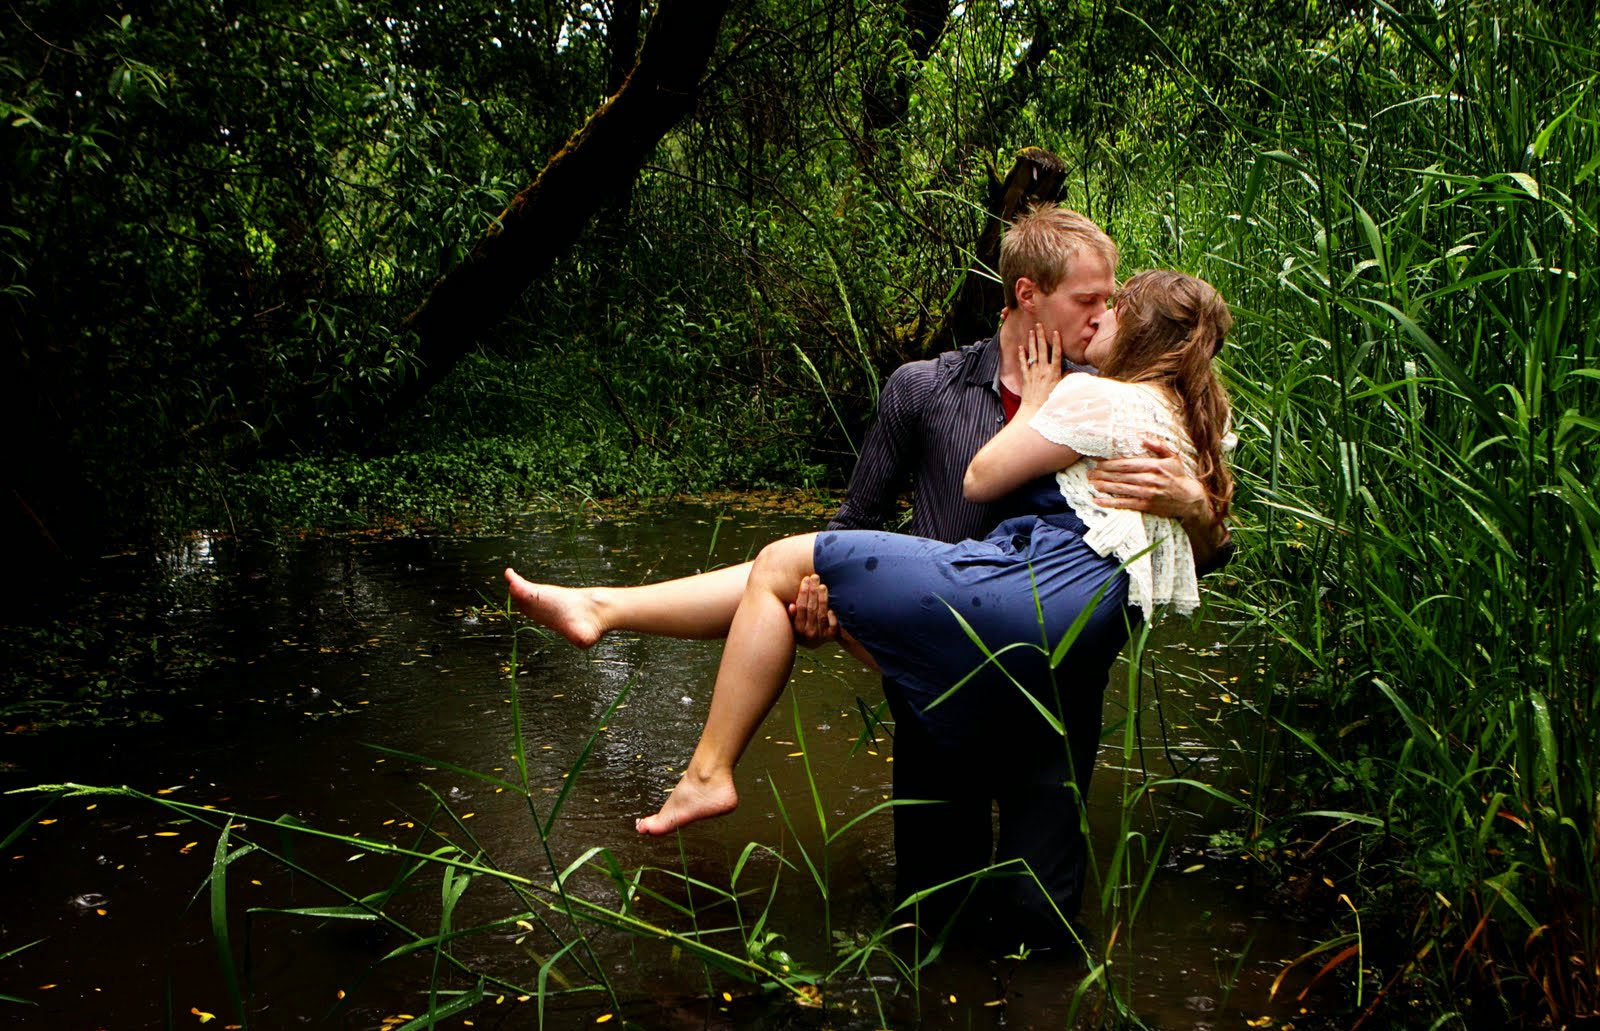 Gorgeous Love Couple Photography